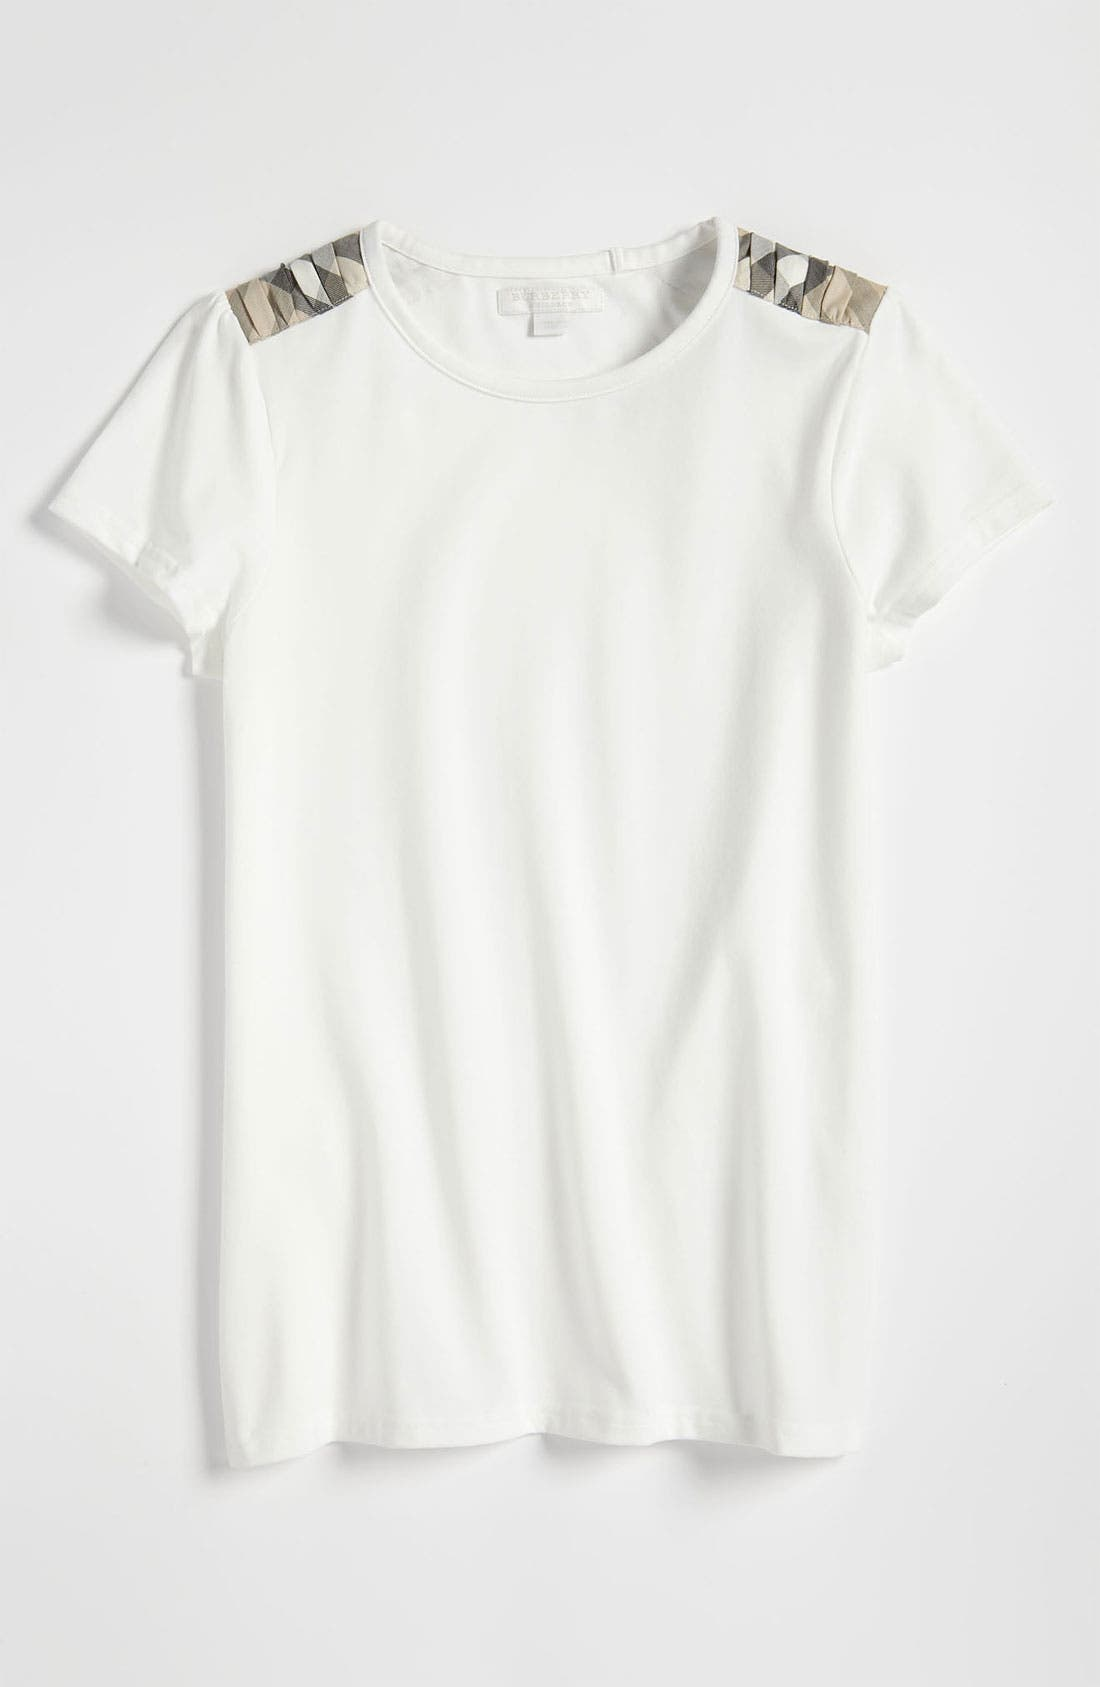 Alternate Image 1 Selected - Burberry Shoulder Patch Tee (Little Girls)